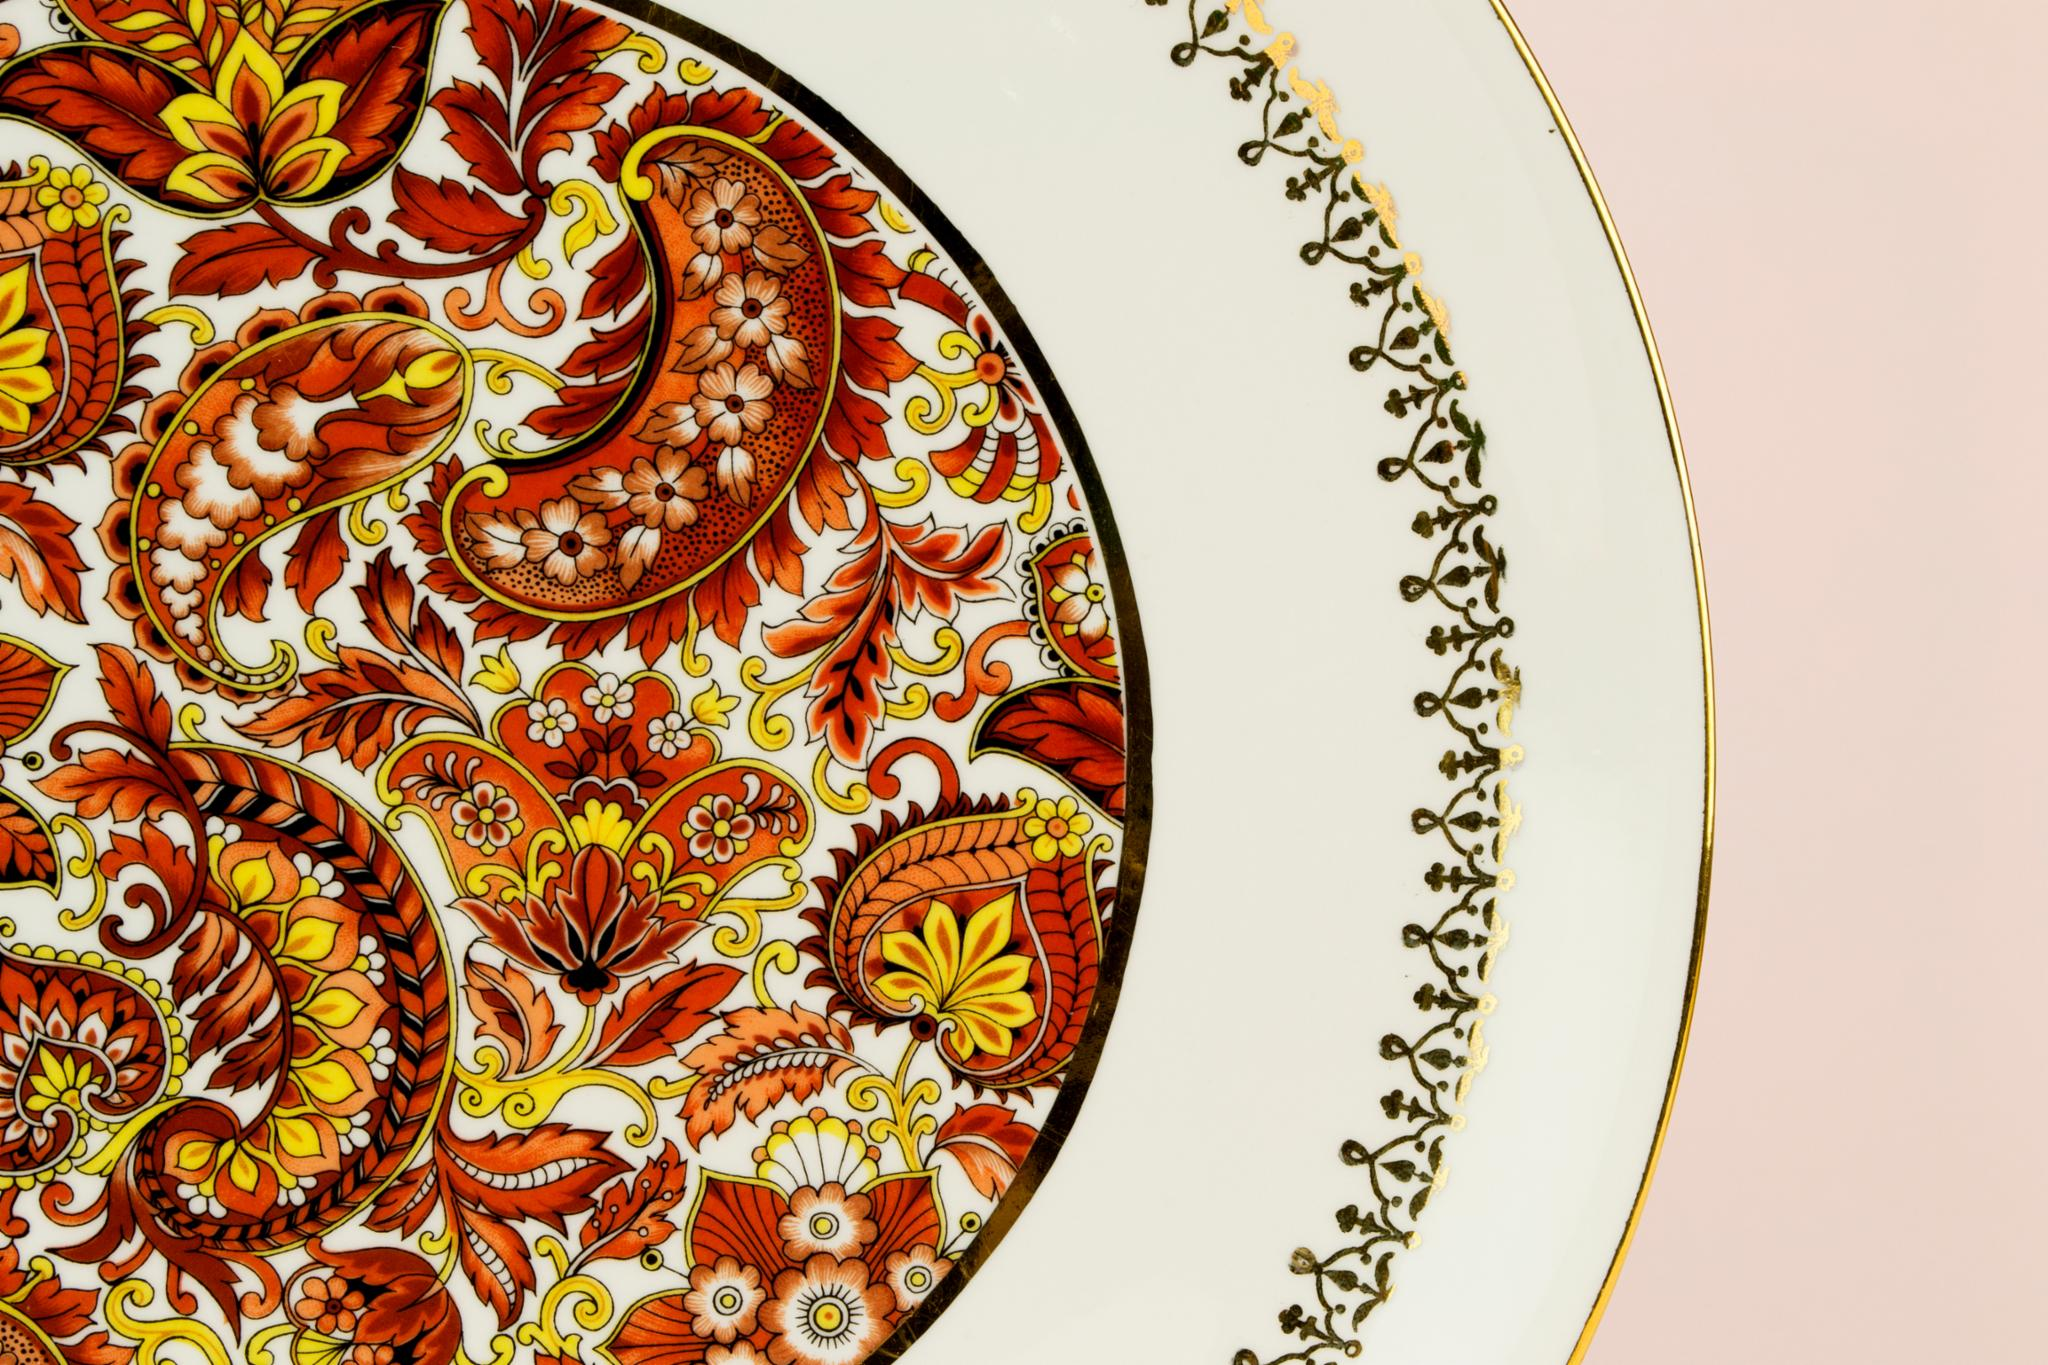 Large paisley cake platter by Pillivuyt